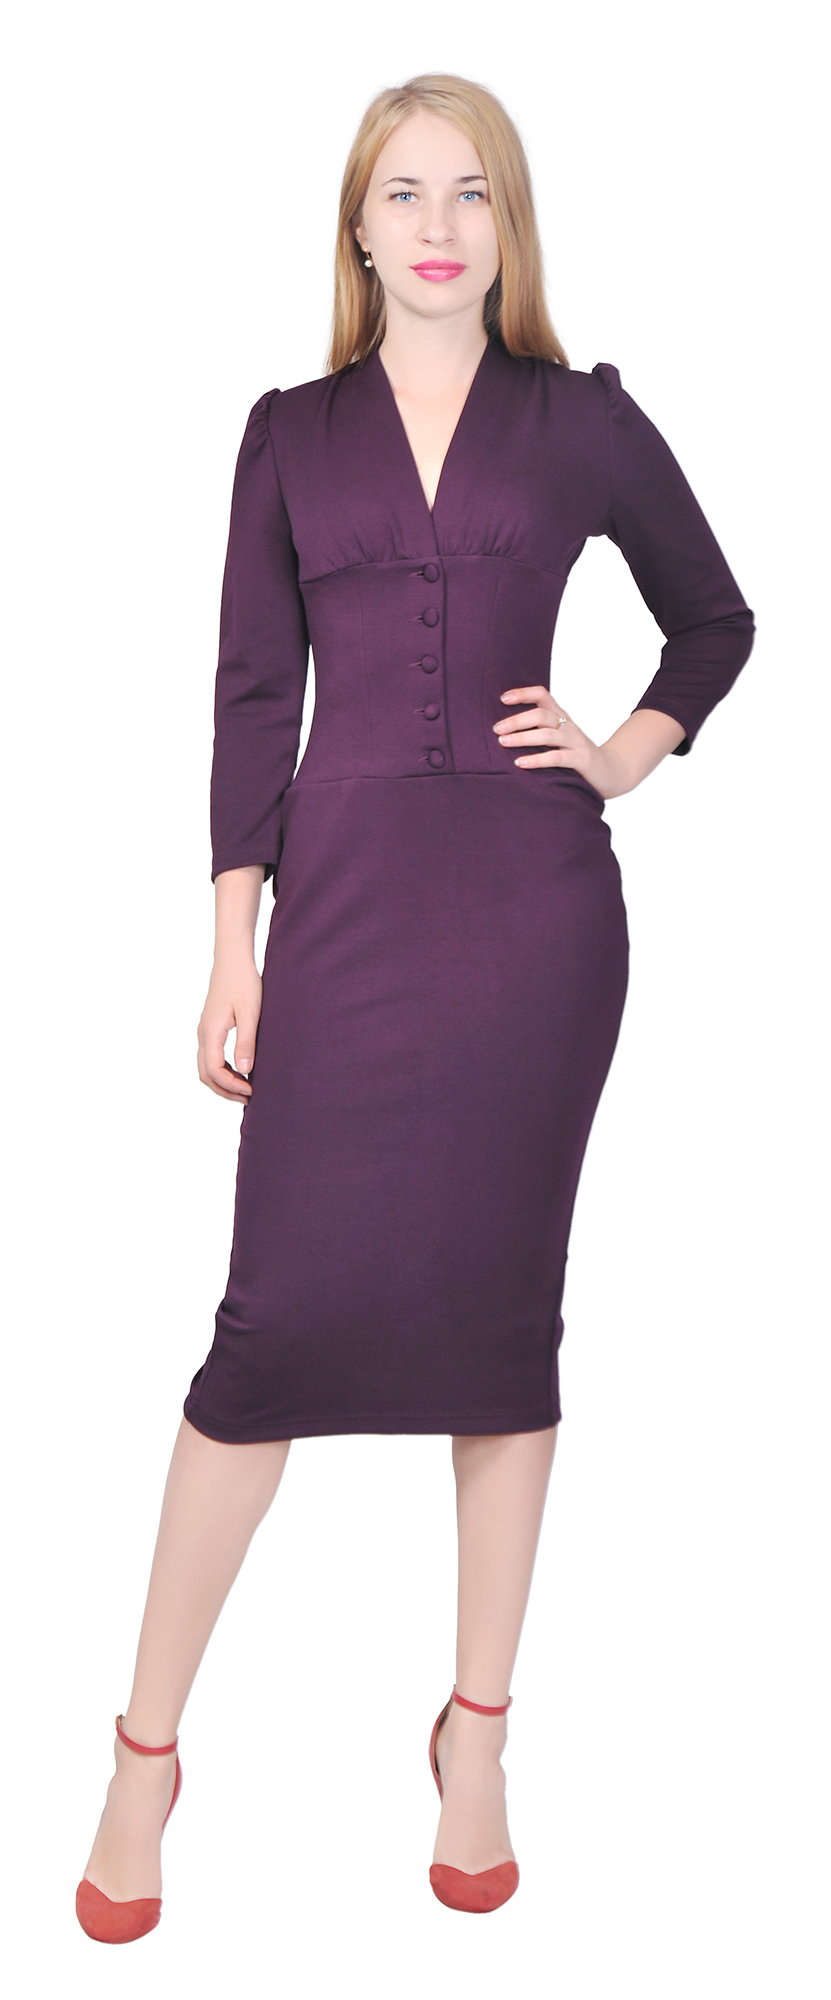 MARYCRAFTS WOMEN\'S VINTAGE 1940S PENCIL WORK OFFICE DRESS COCKTAIL ...